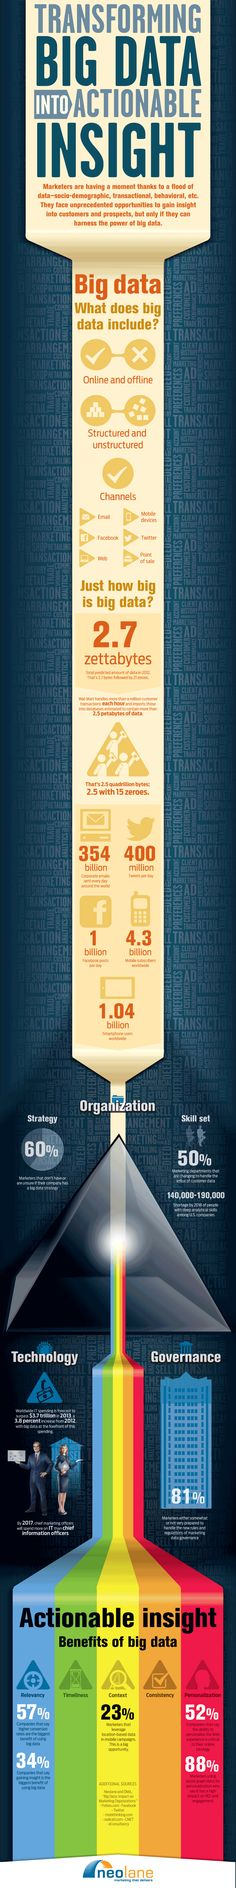 transforming big data Transforming Big Data Into Actionable Insight [Infographic]